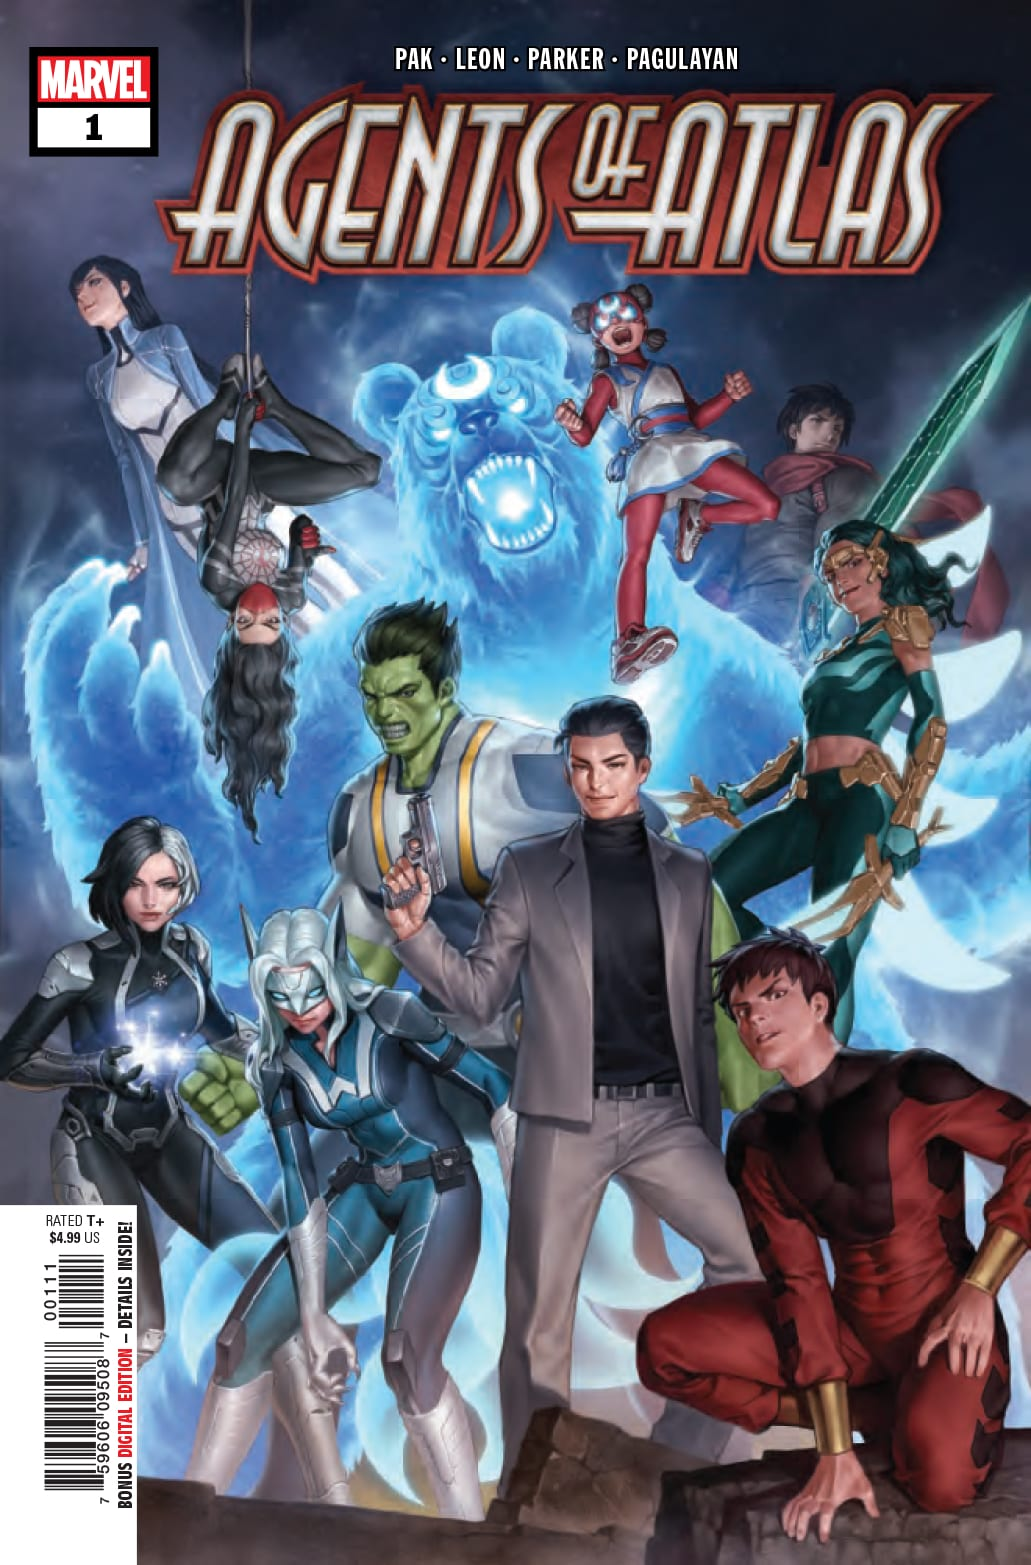 Review: AGENTS OF ATLAS #1 Is A Fire Breathing Blast of Superhero Fun 1